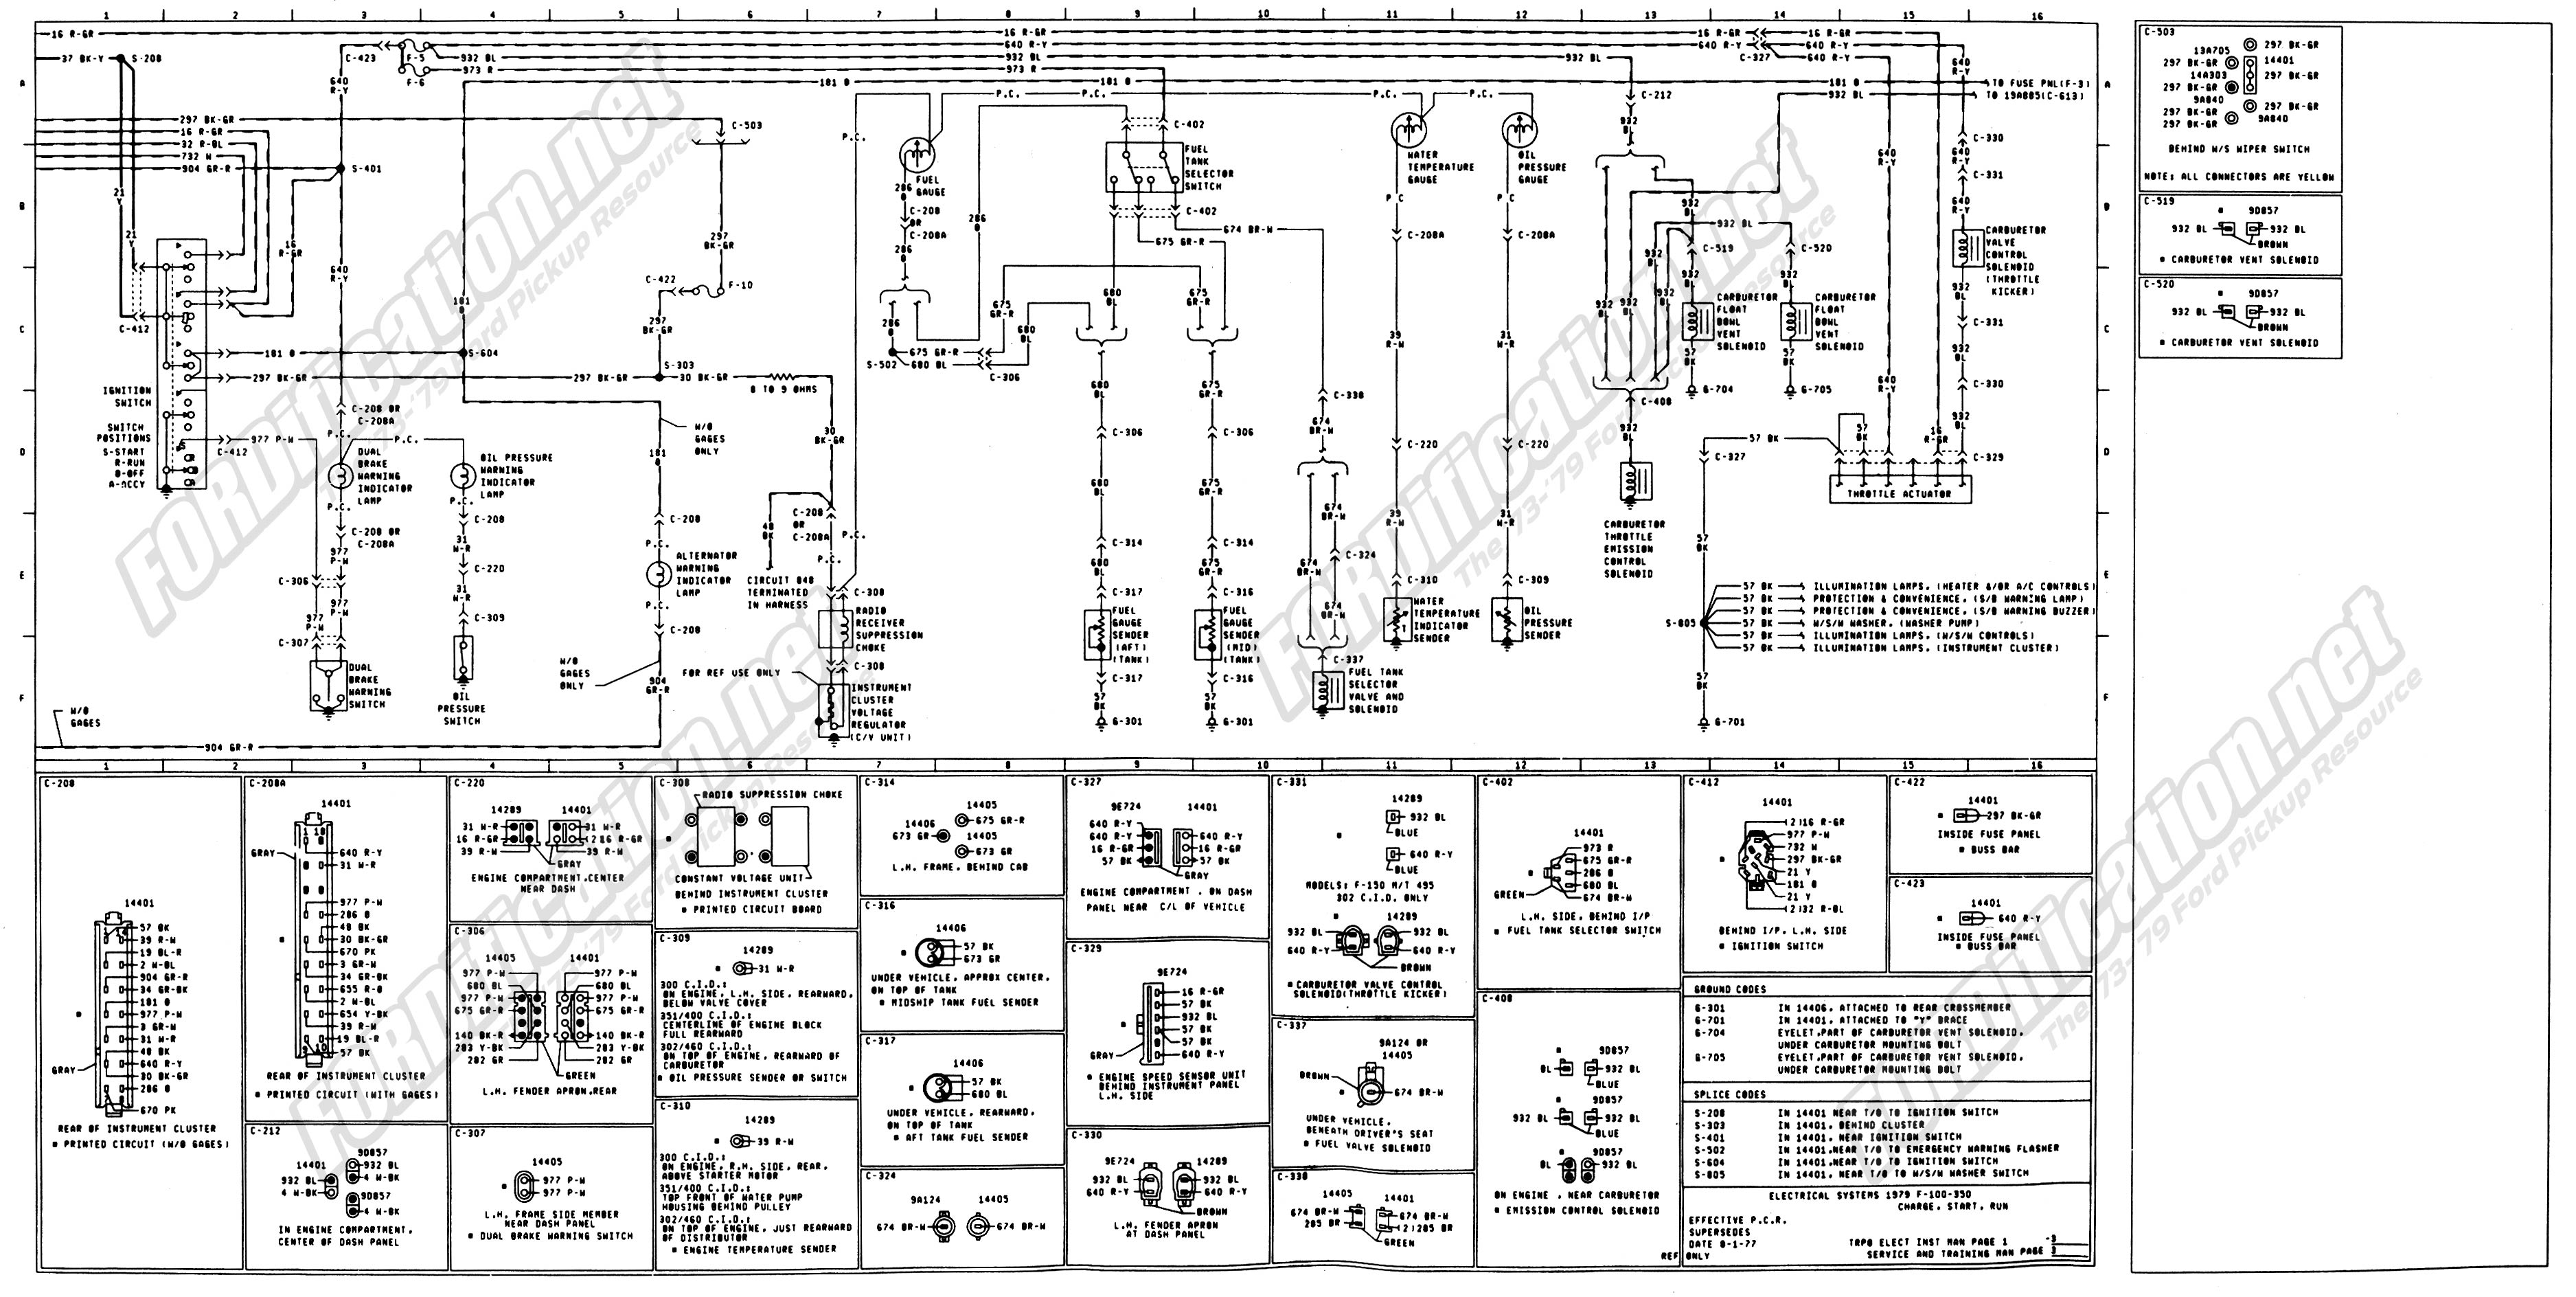 Ford Galaxy Fuse Box further 2010 Fusion Air Conditioner Wiring Diagrams likewise Wiring Diagram Ford Transit Connect Radio also 961502 Wiring Diagram Schamatic Help moreover 2005 Electra Glide Wiring Diagram. on ford transit connect 2010 fuse box diagram